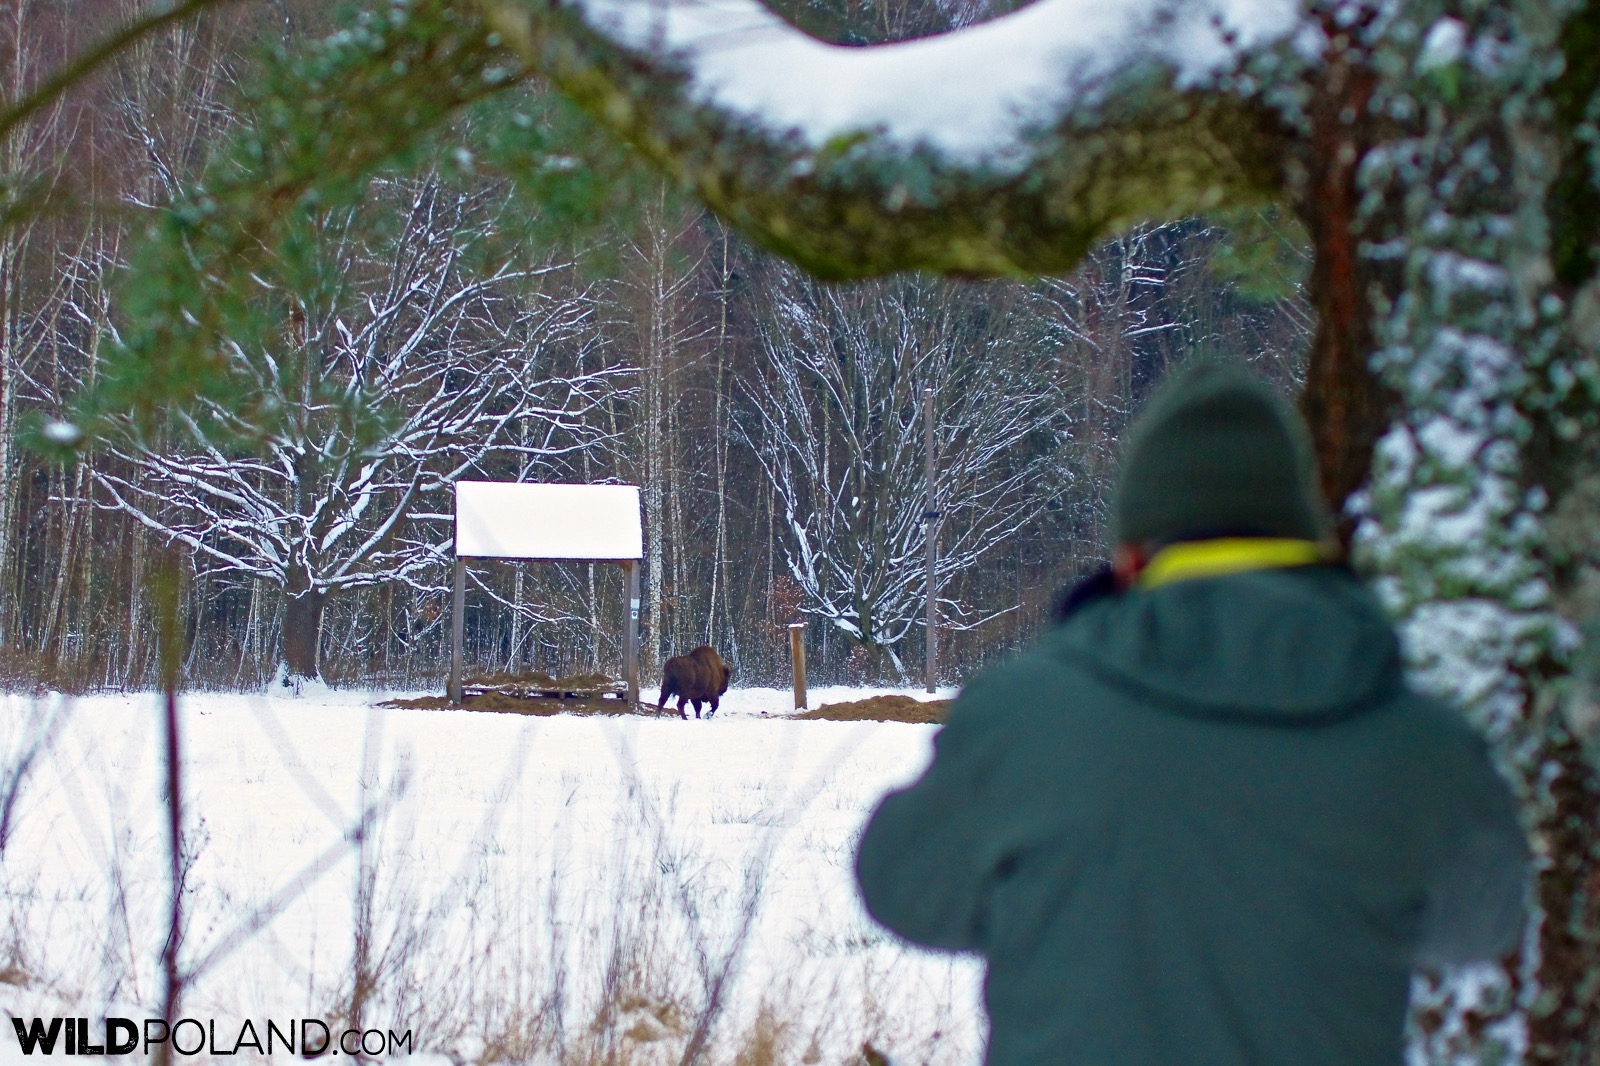 Bison at the feeding place, Białowieża Forest, photo by Andrzej Petryna